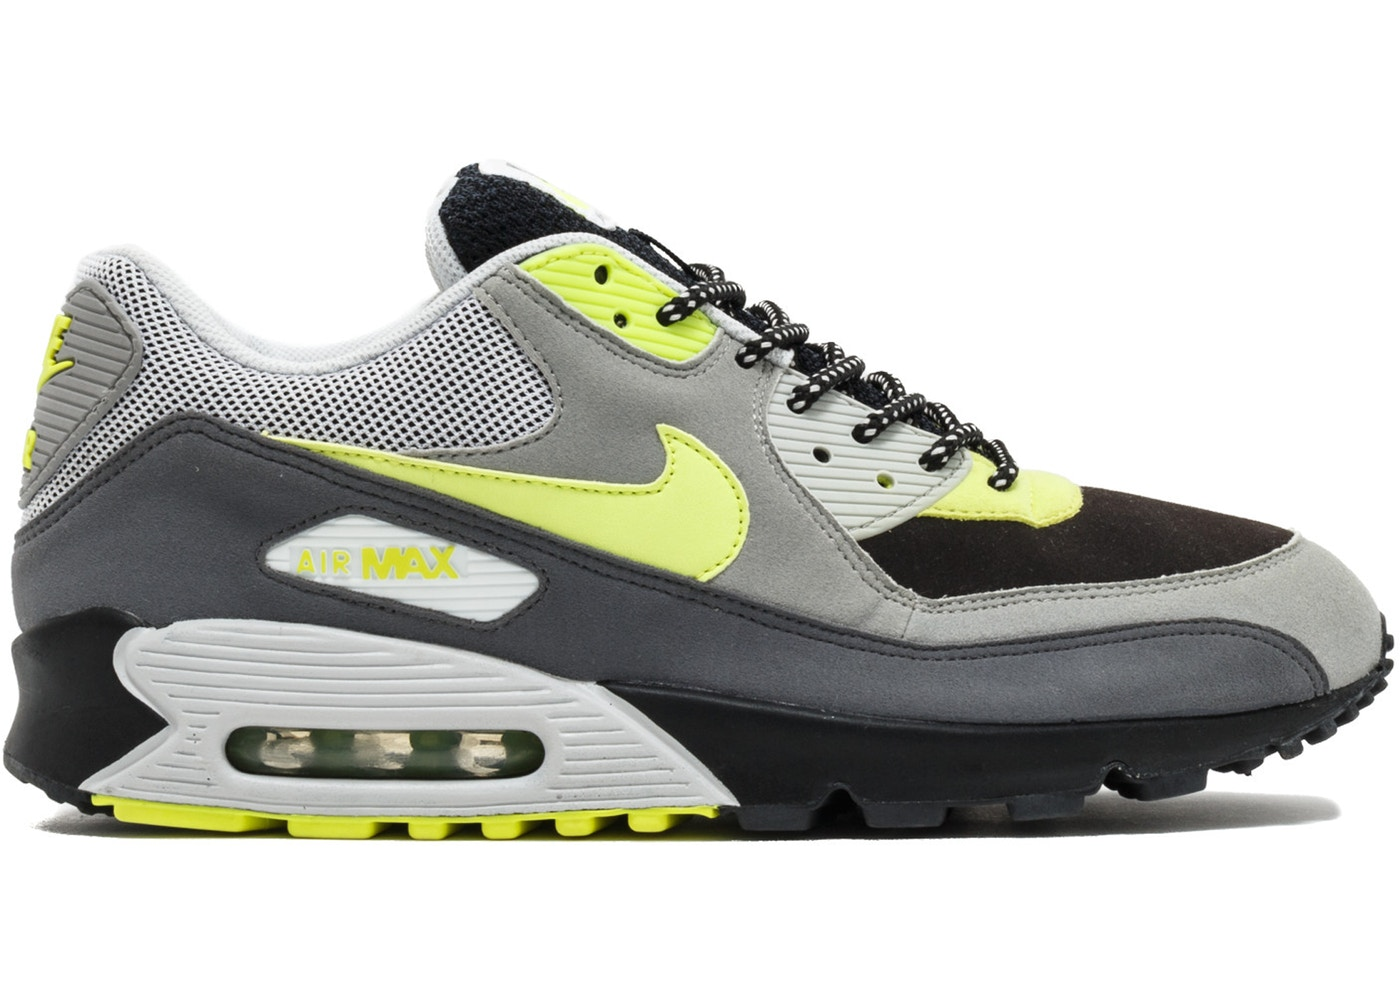 cheap for discount 67817 94708 Air Max 90 Dave White Neon Pack - 309299-014